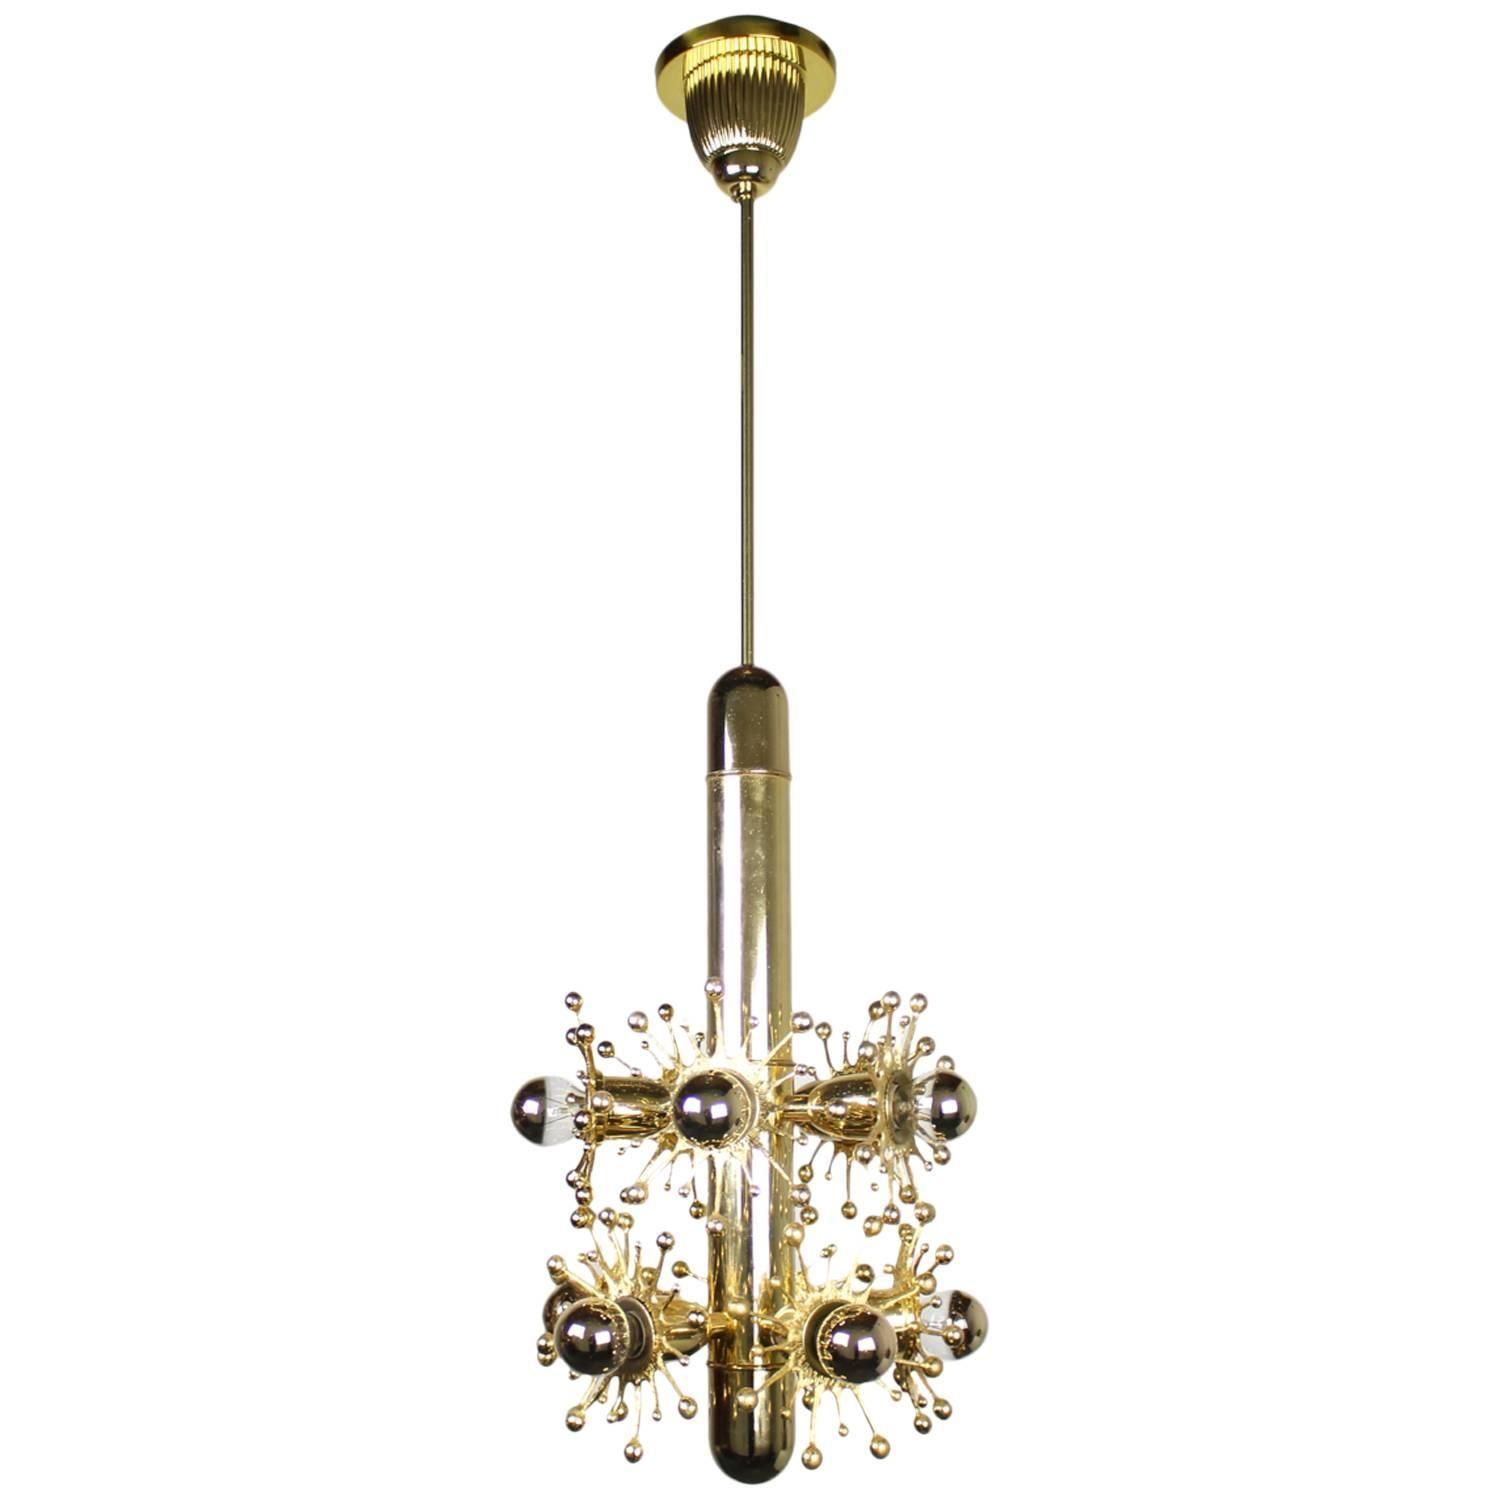 mirrored product esla light img bi multi pendant cooling industrial